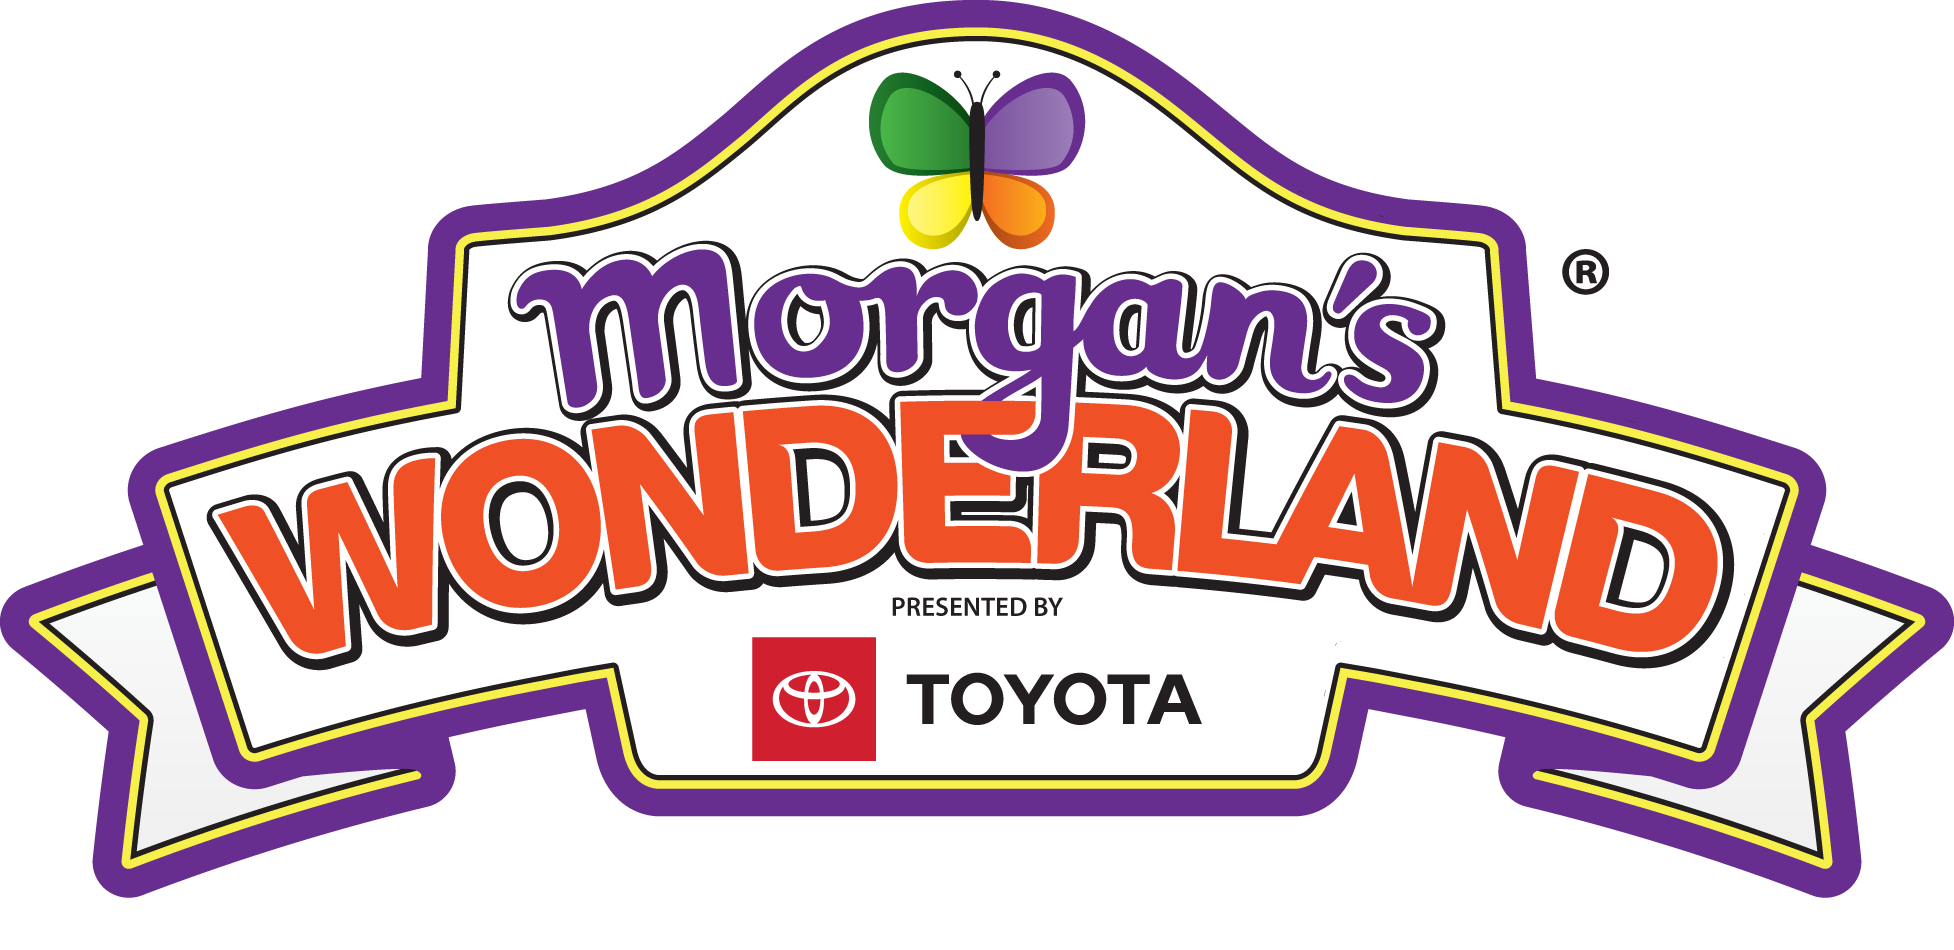 Morgan's Wonderland